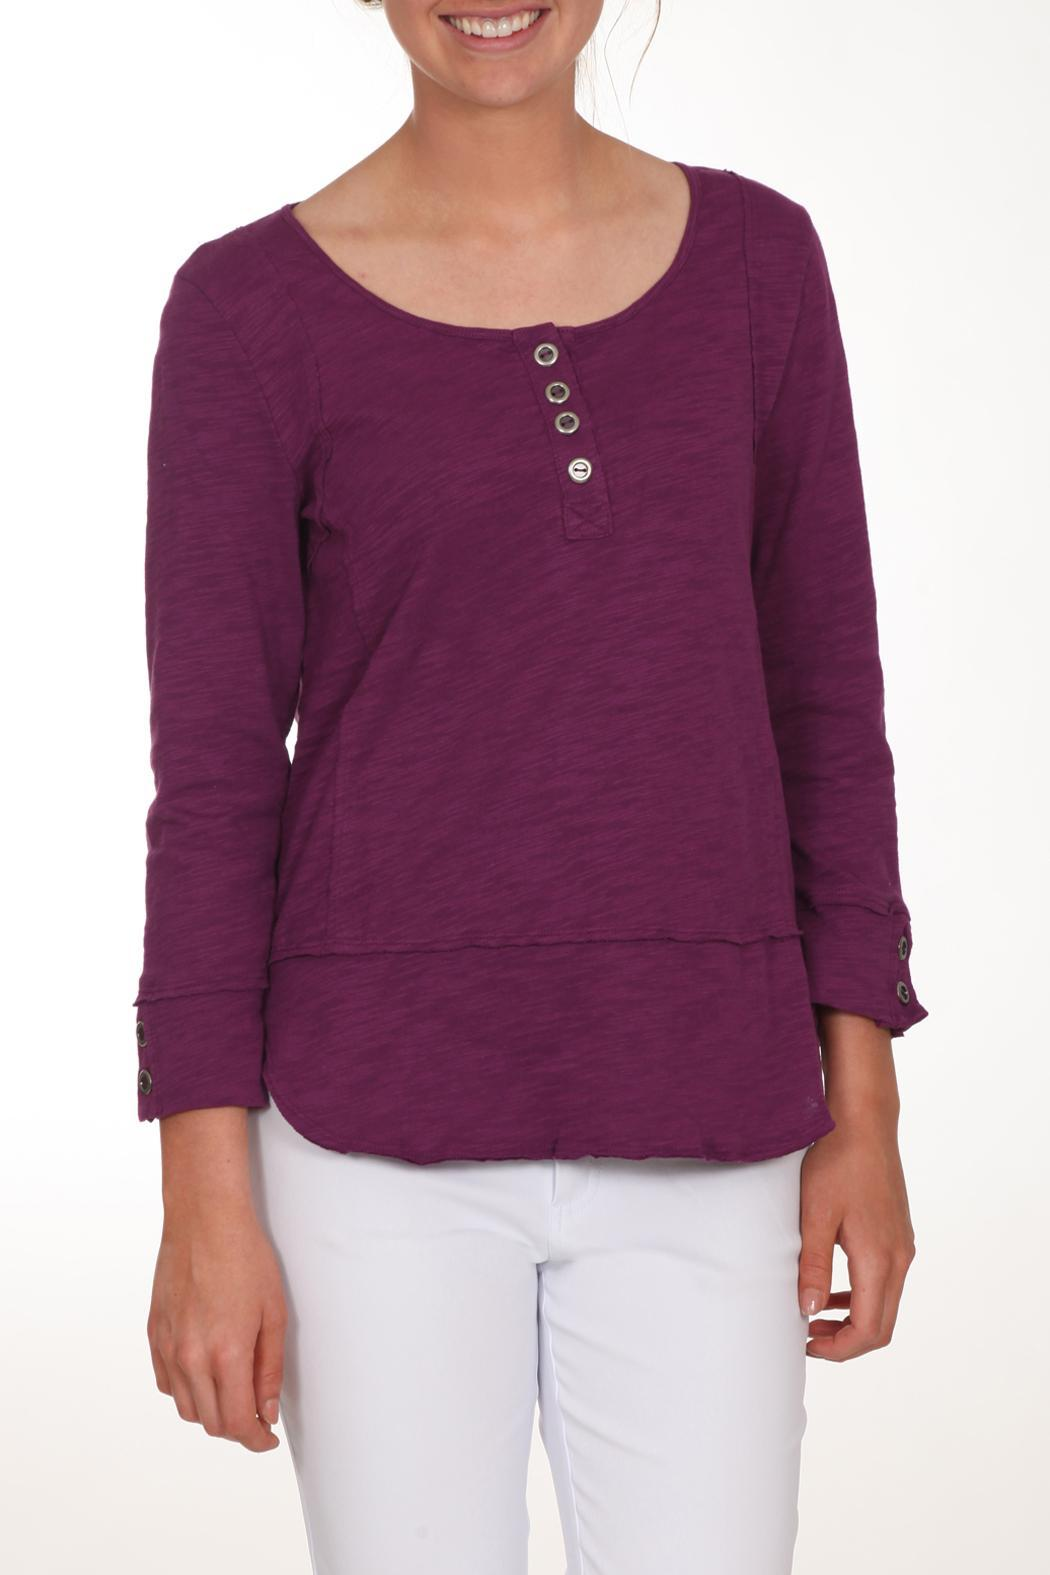 Neon Buddha Purple Button Top - Front Cropped Image